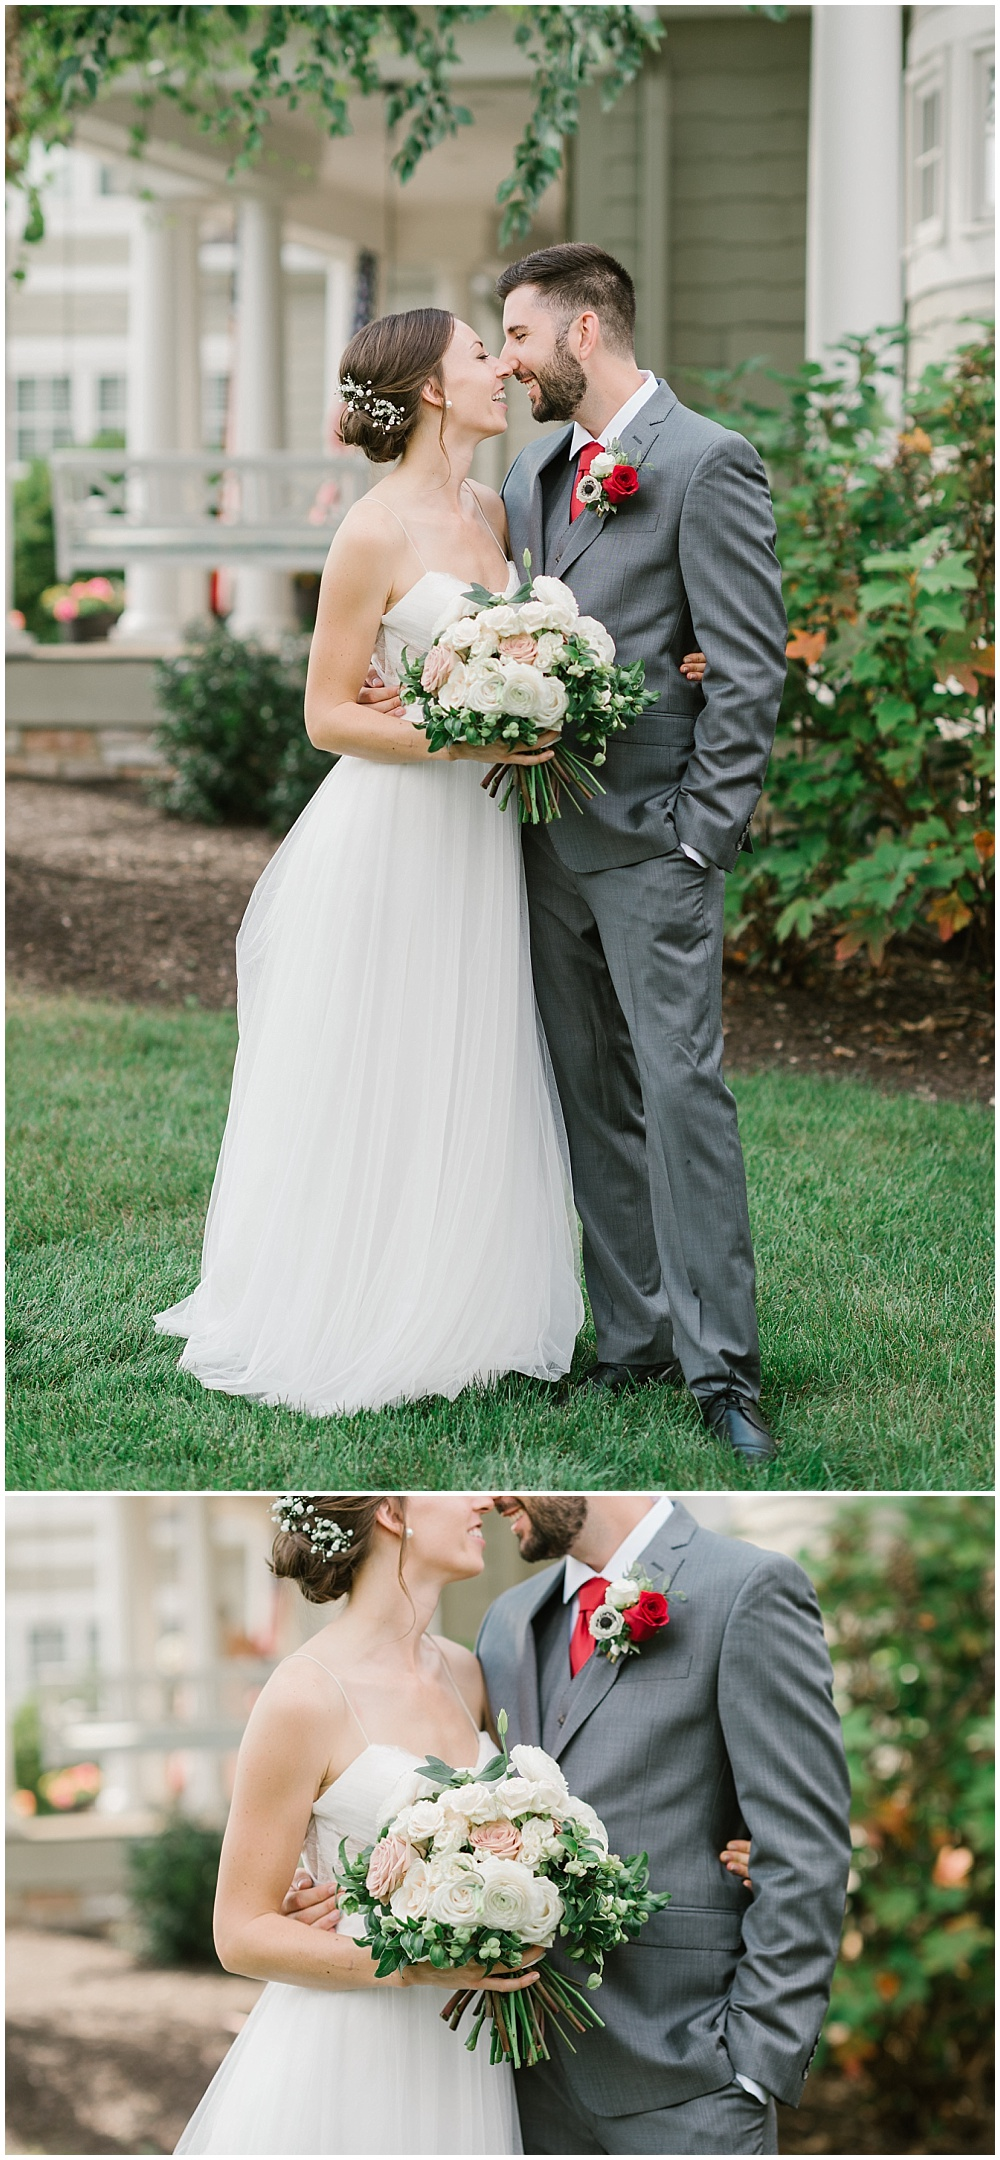 Bride and groom first look Fall garden-inspired wedding at the Ritz Charles Garden Pavilion in Carmel, Indiana   Jessica Dum Wedding Coordination